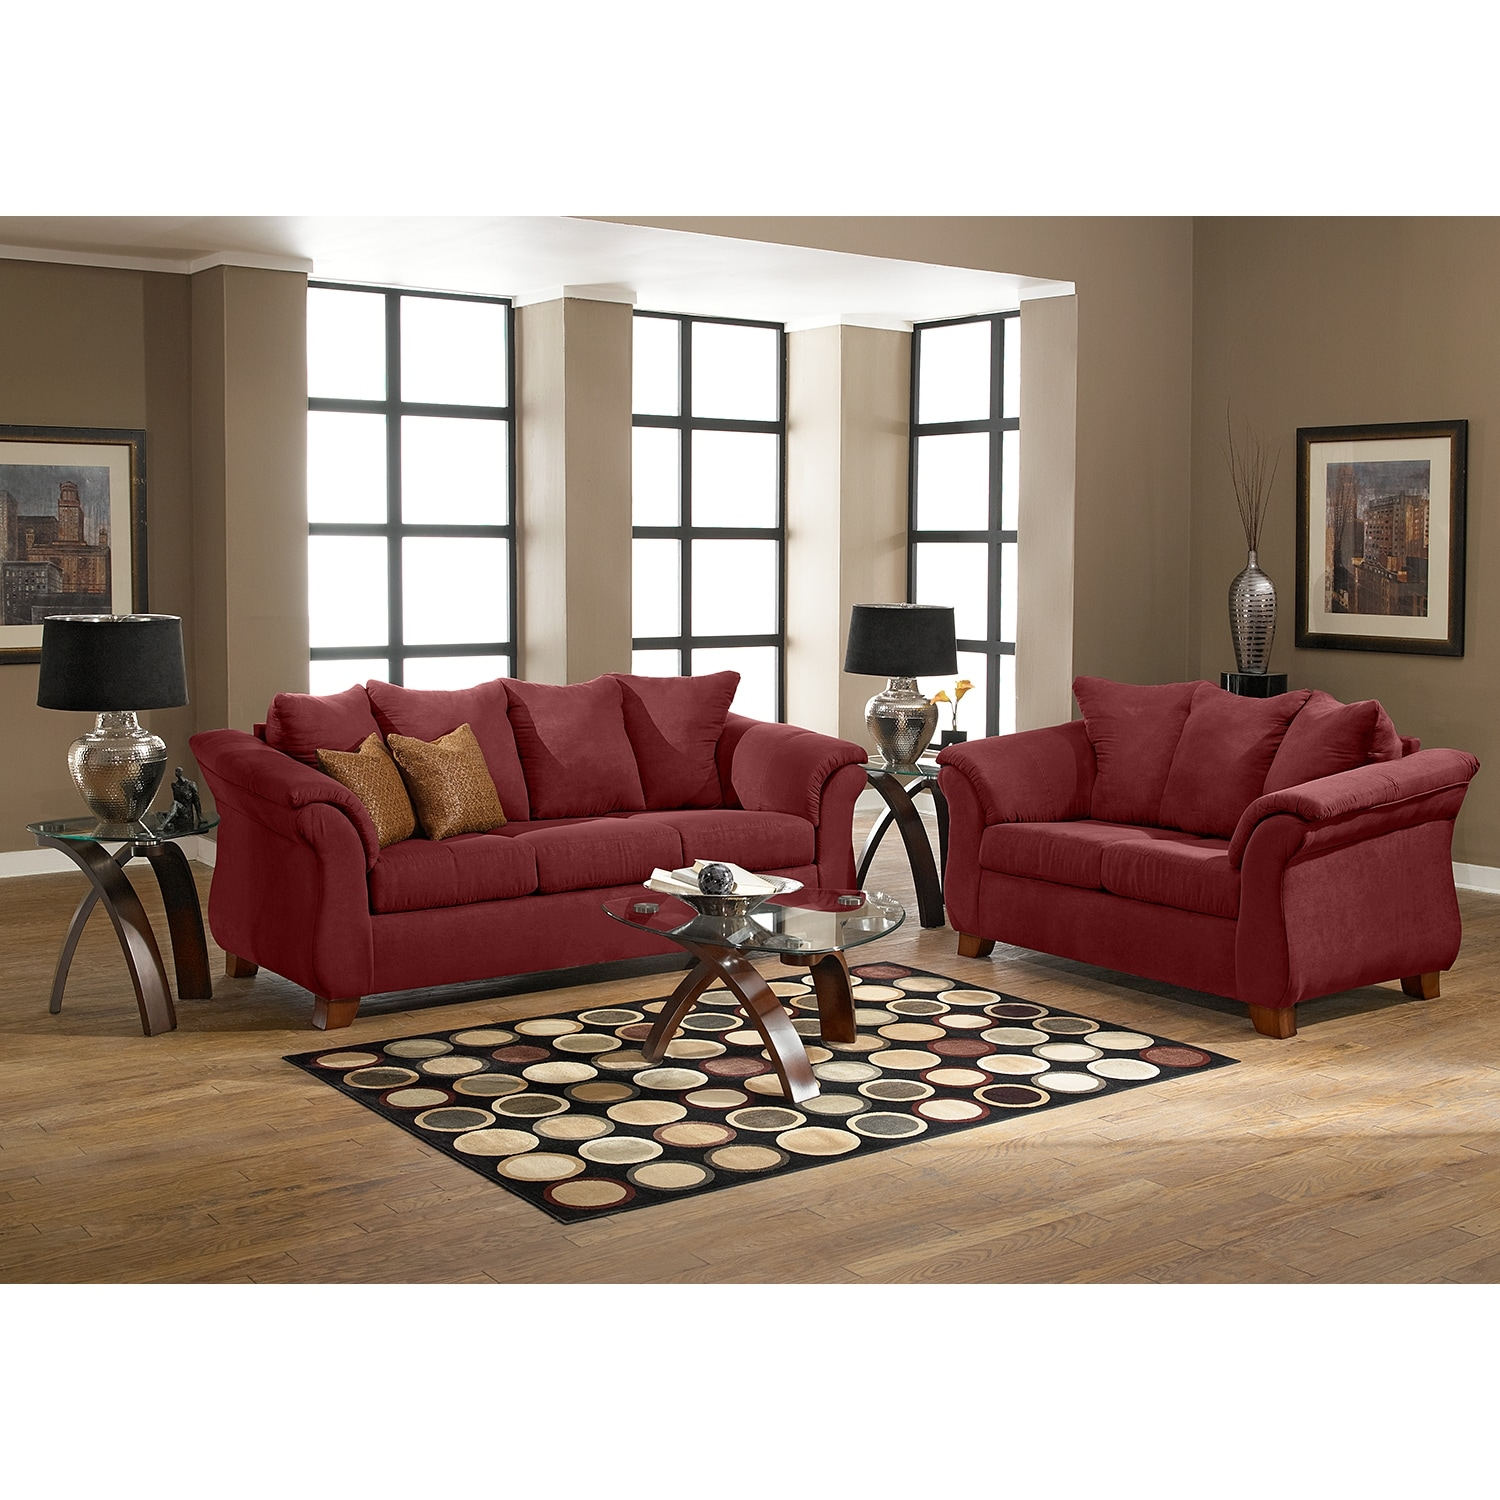 Adrian Sofa - Red : American Signature Furniture